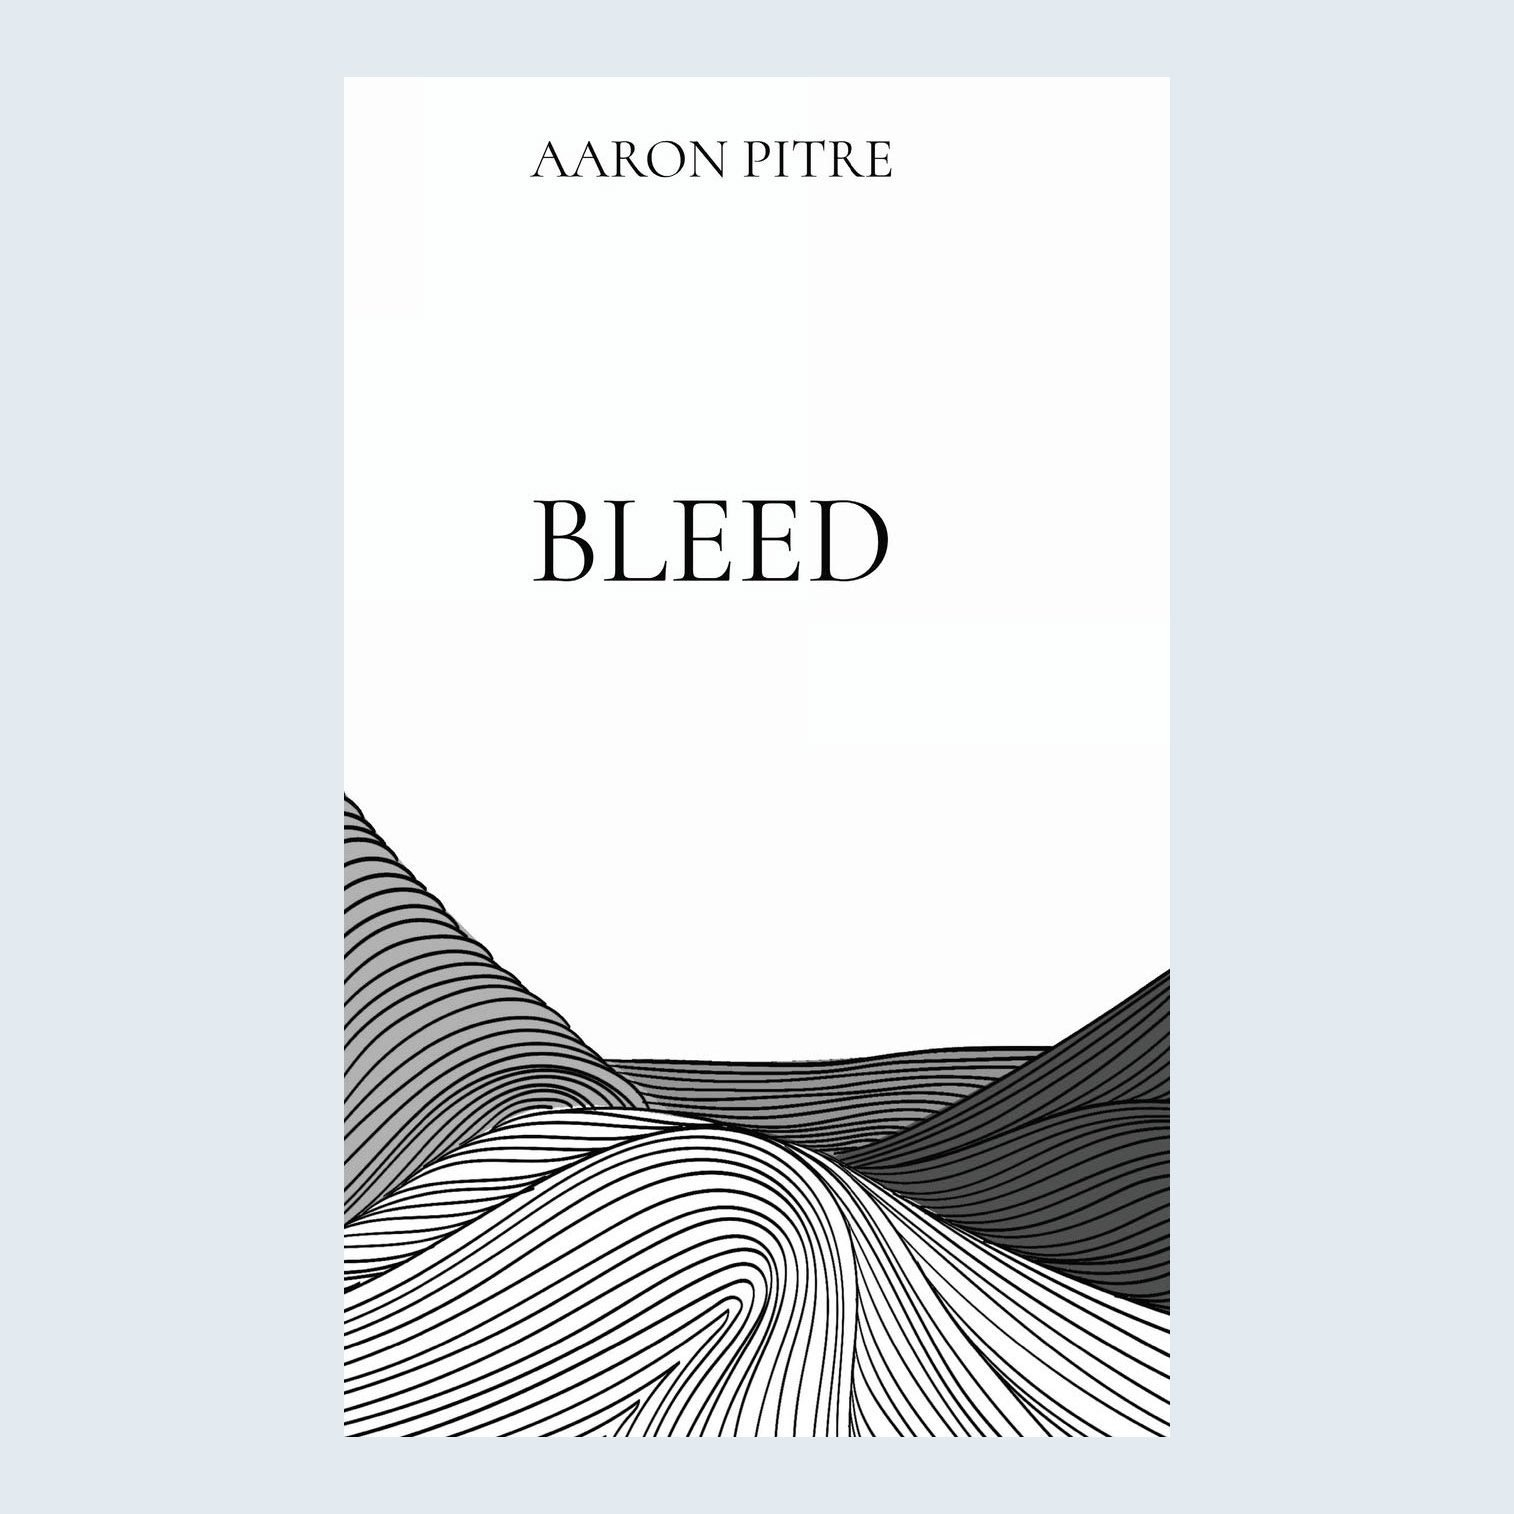 Bleed by Aaron Pitre